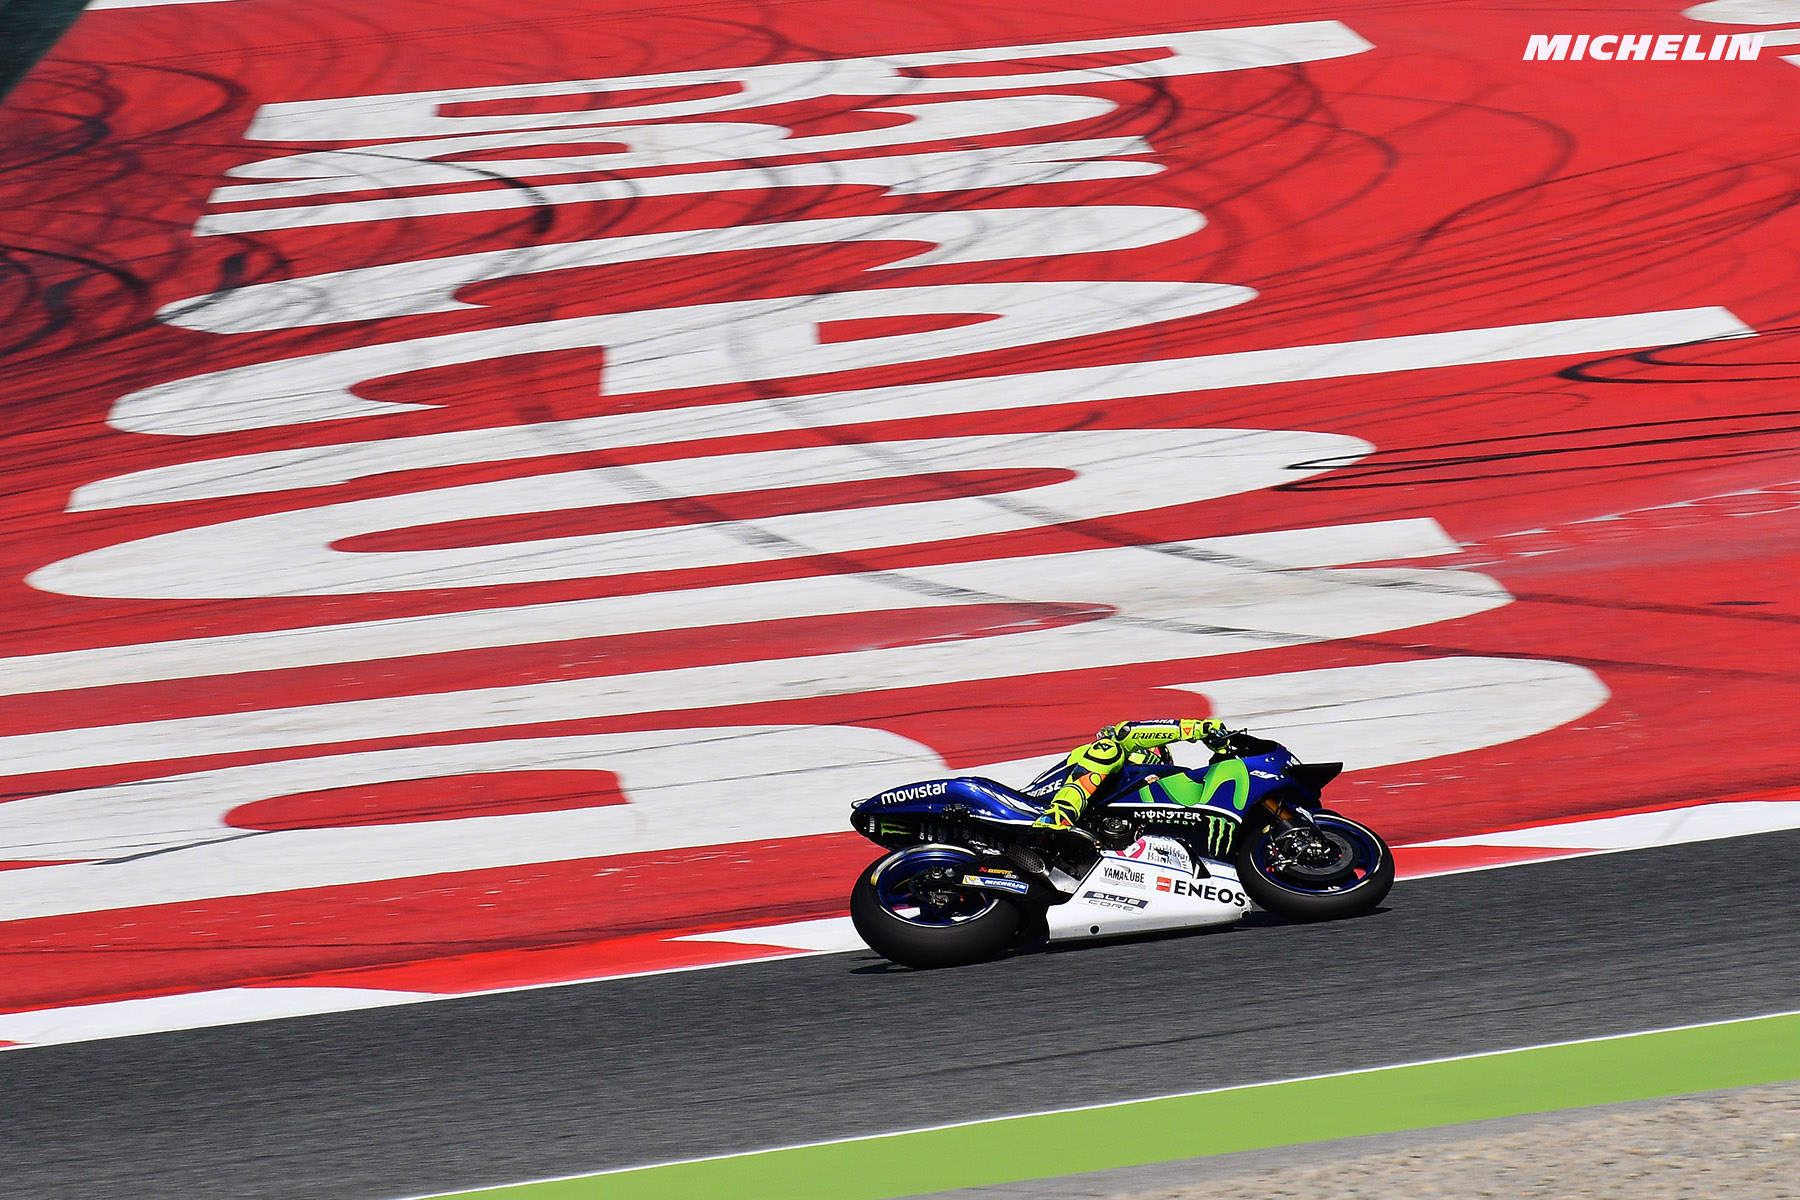 MotoGP: Barcelona, a highlight of the season!